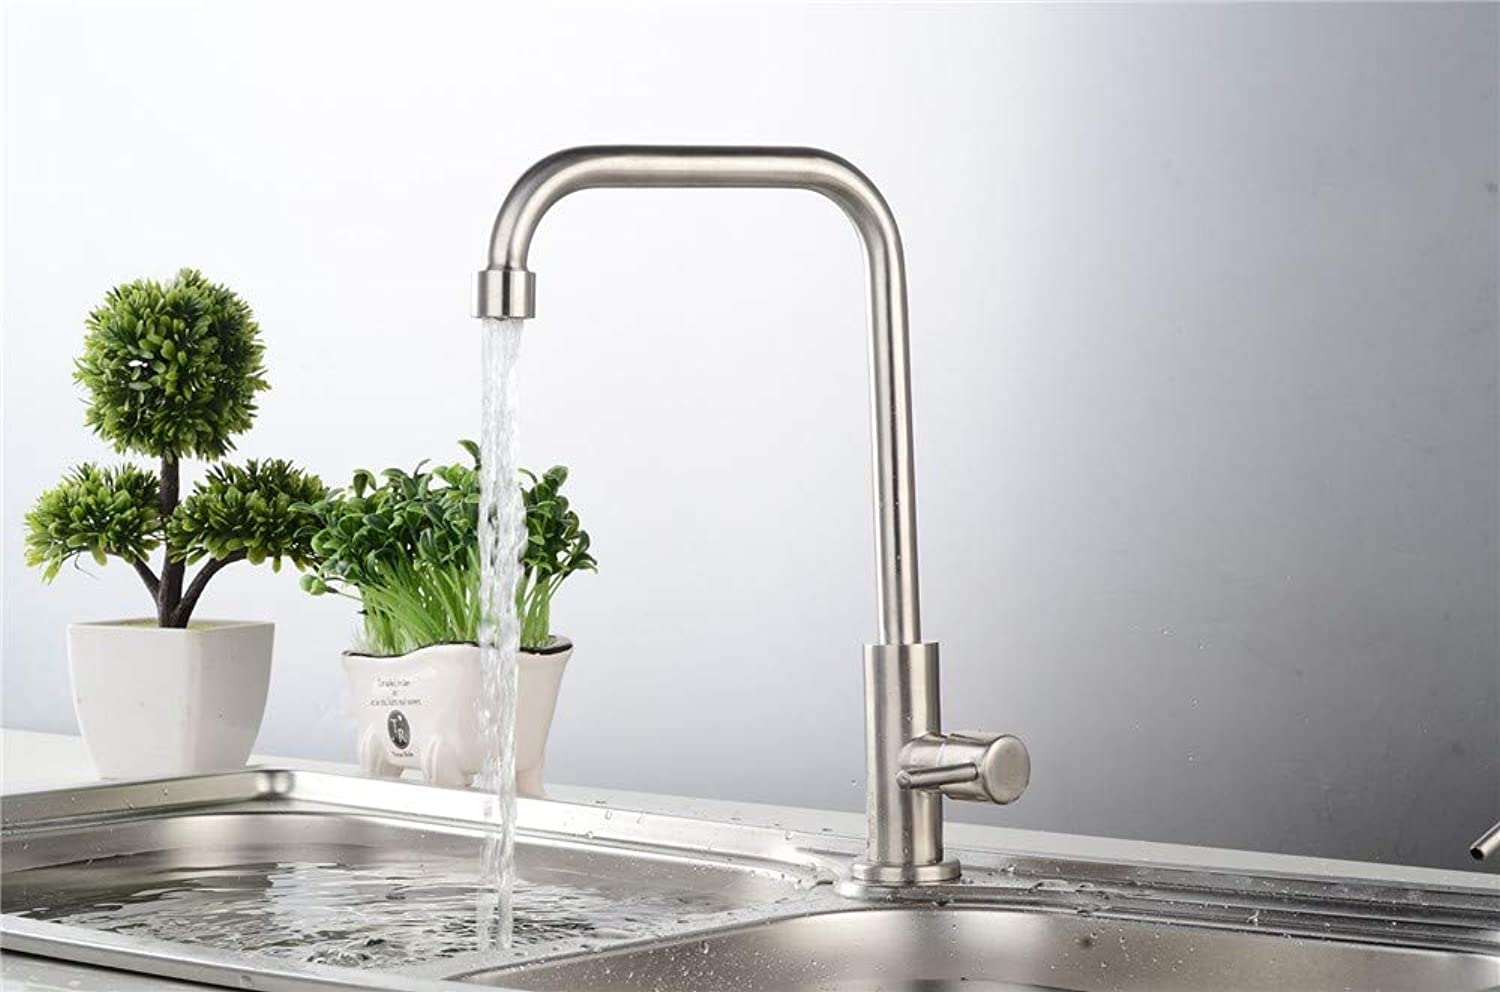 Sink Tap Stainless Steel Wall-Mounted Kitchen Sink Sink Single Cold